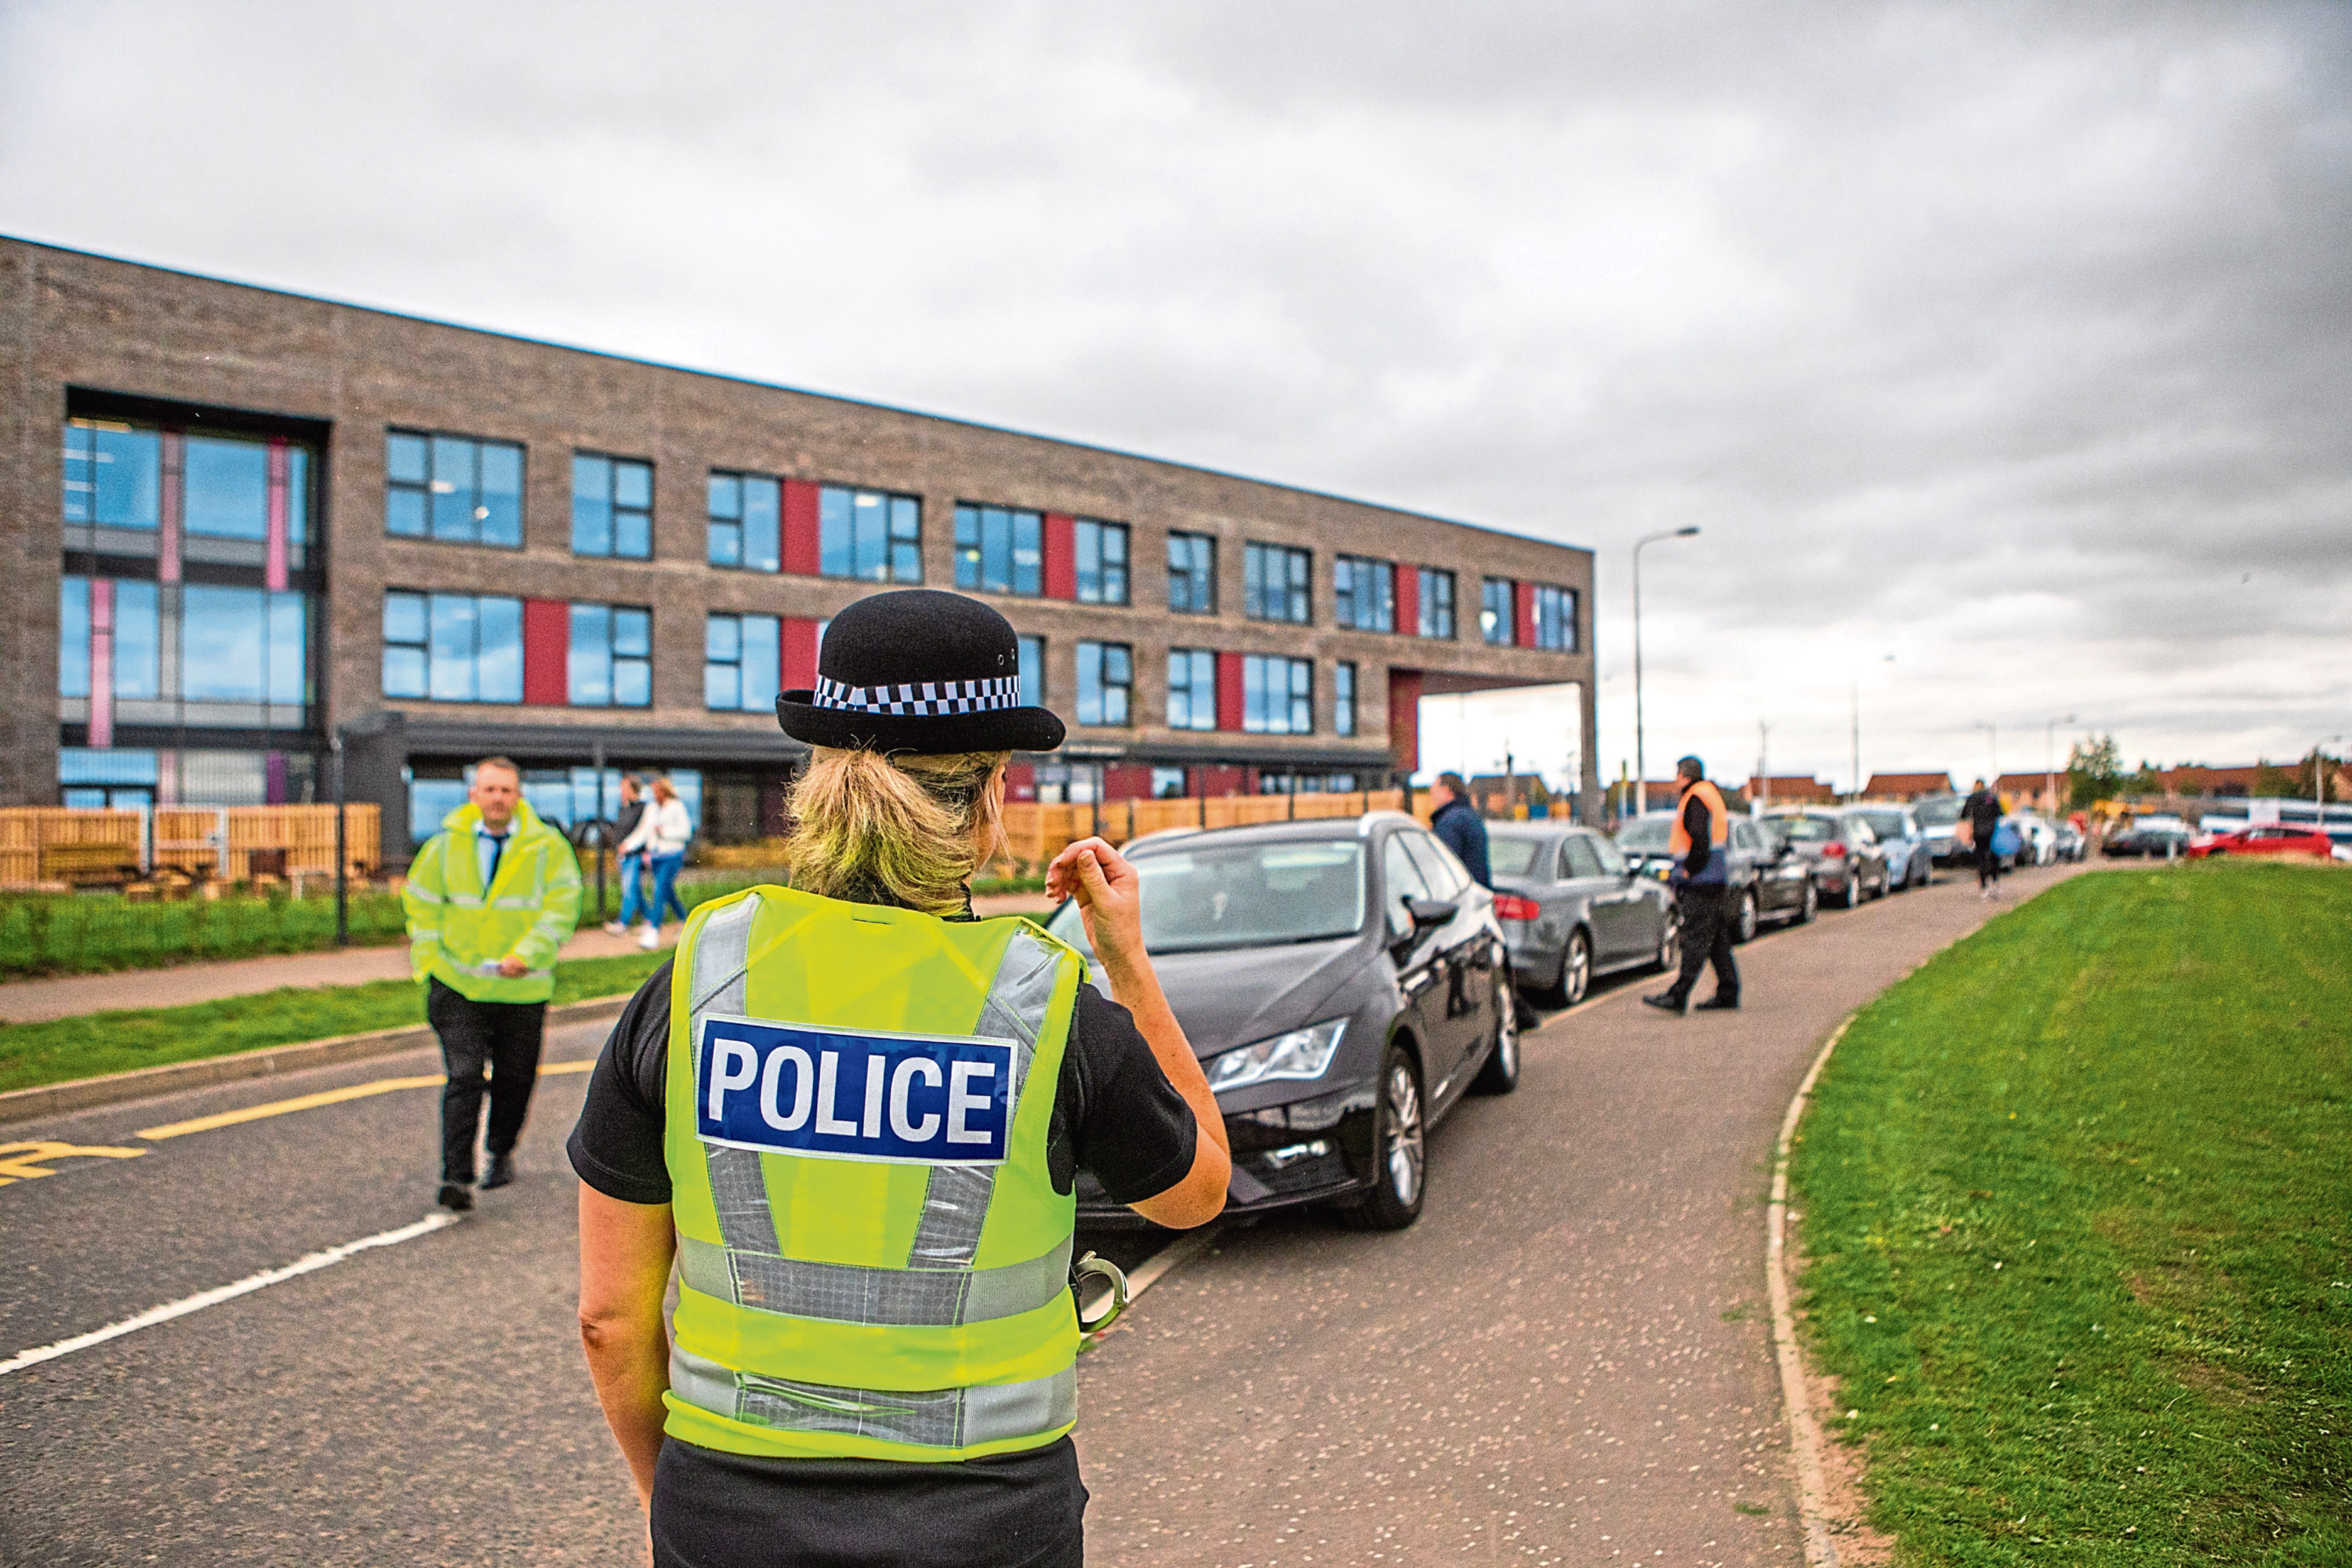 Police were called in to direct traffic when the campus opened in August.